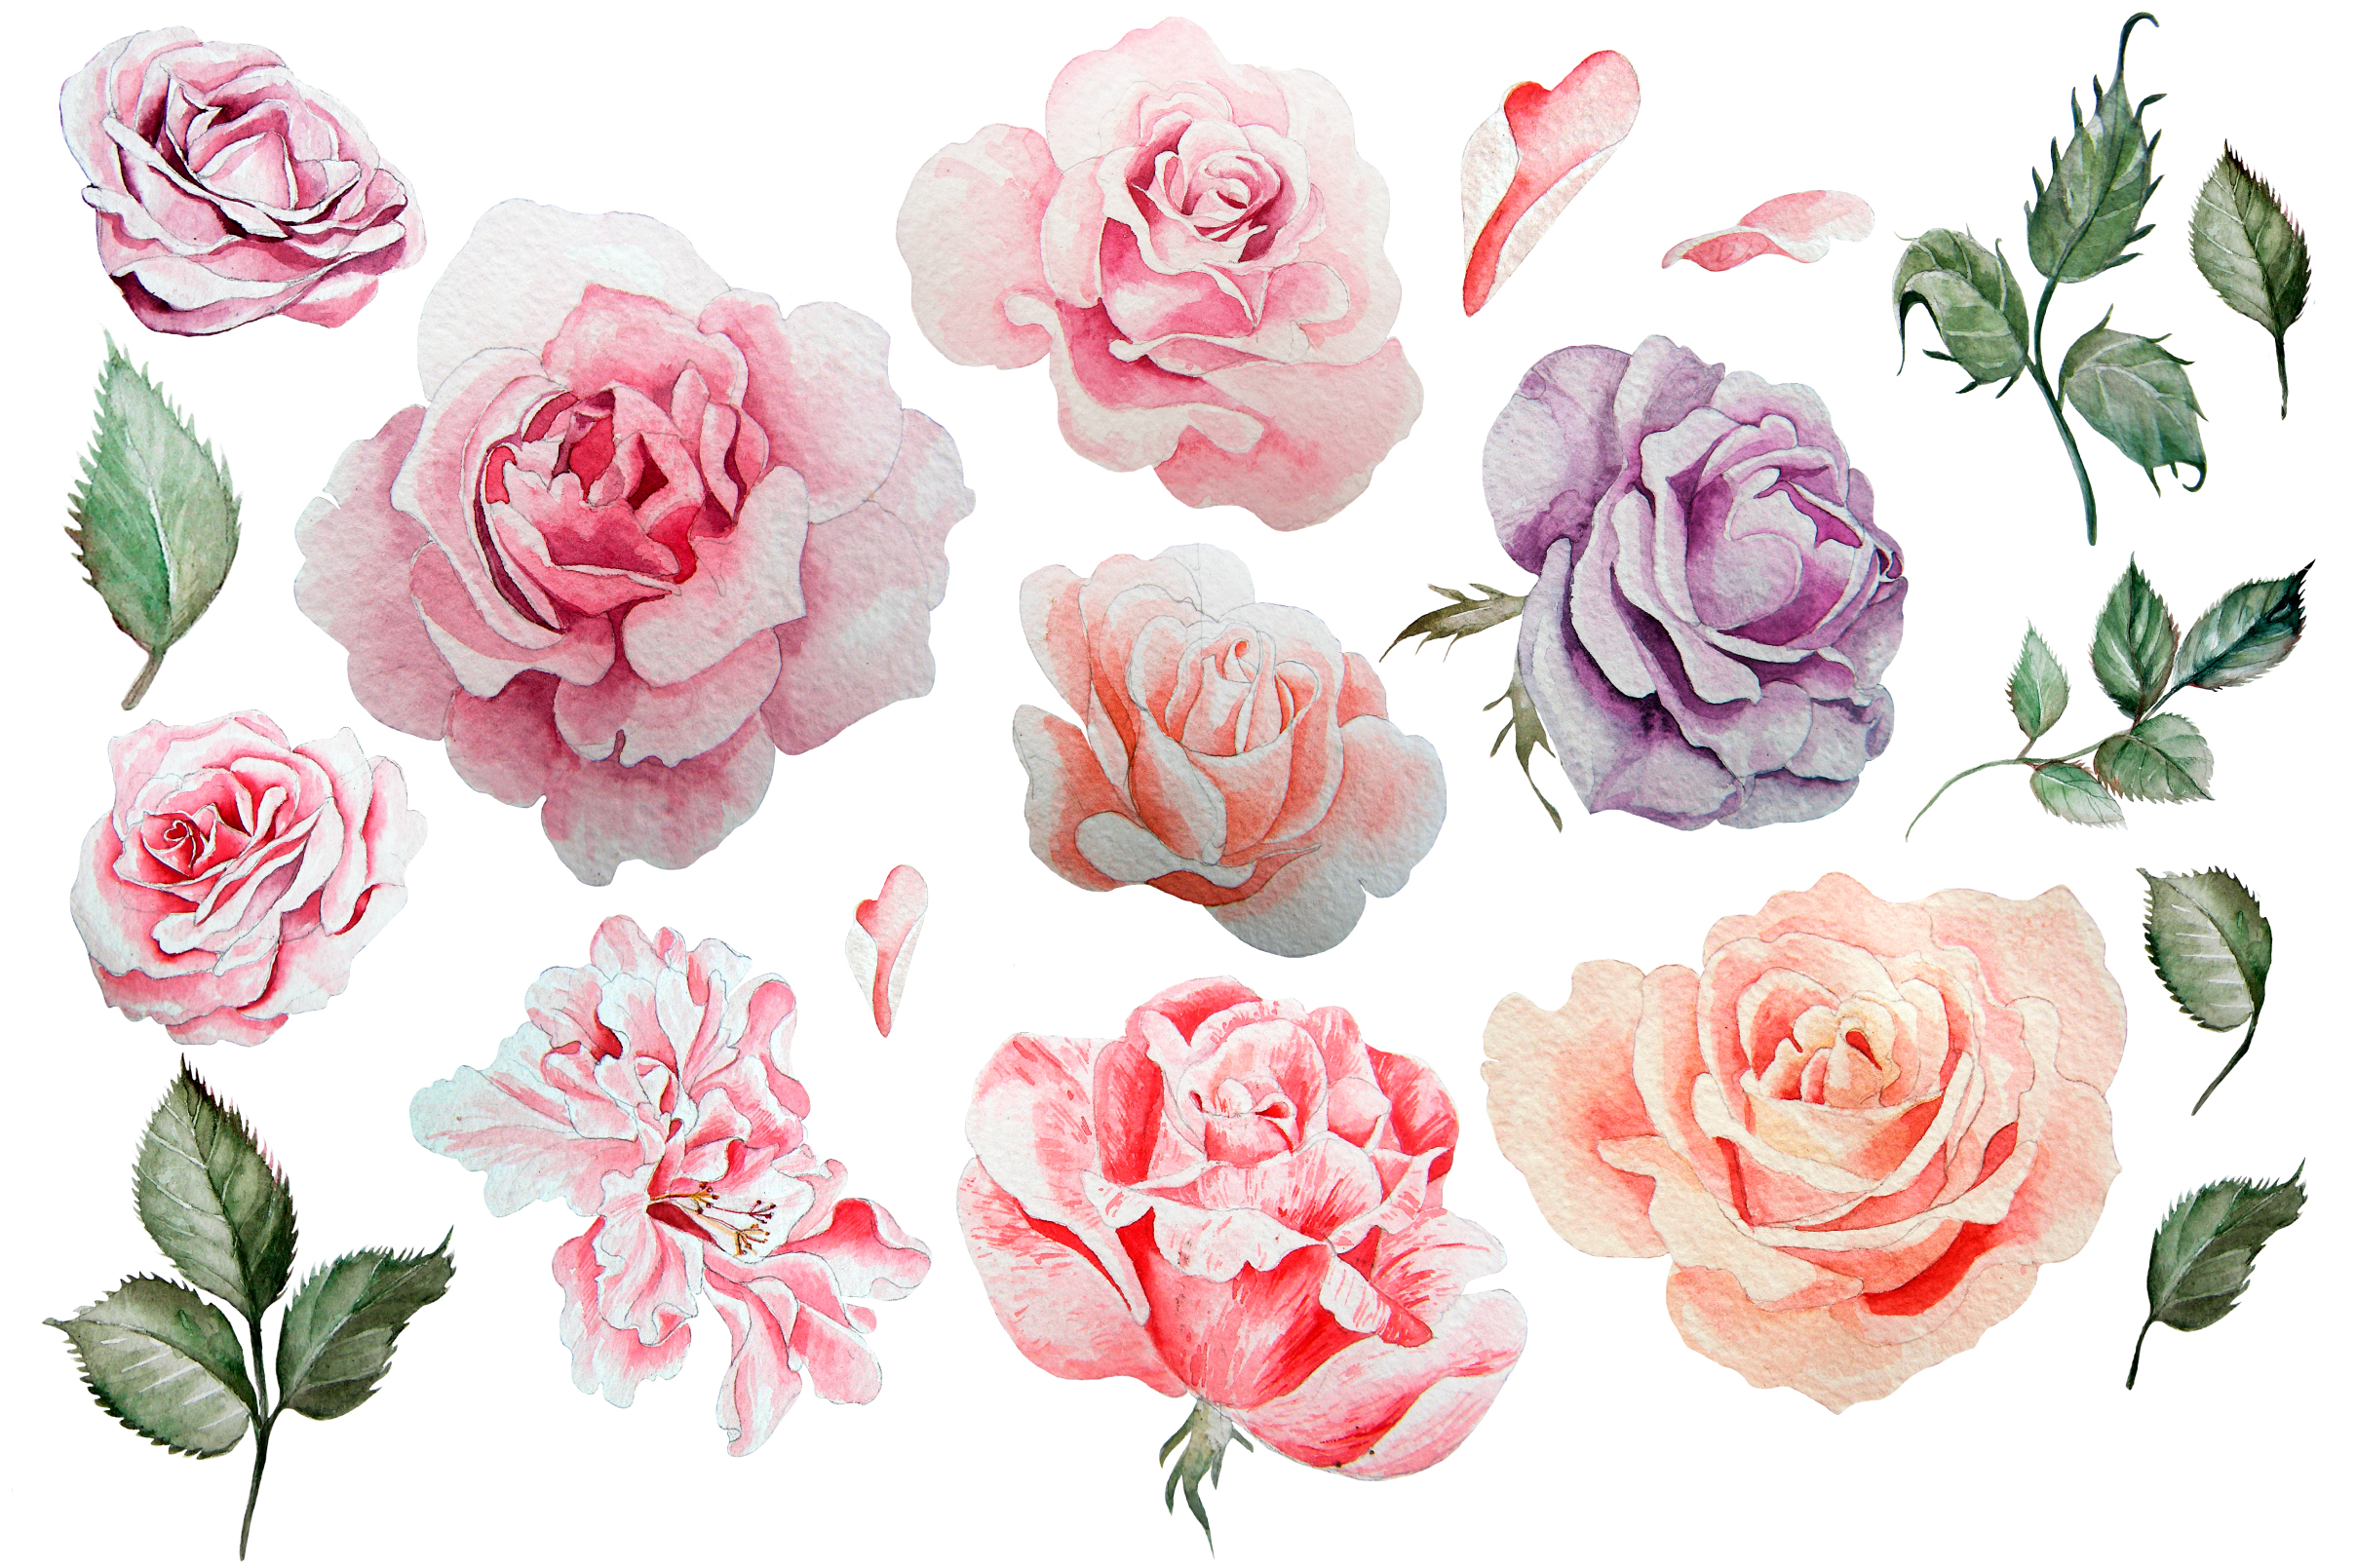 Hand drawn watercolor roses 2 example image 2